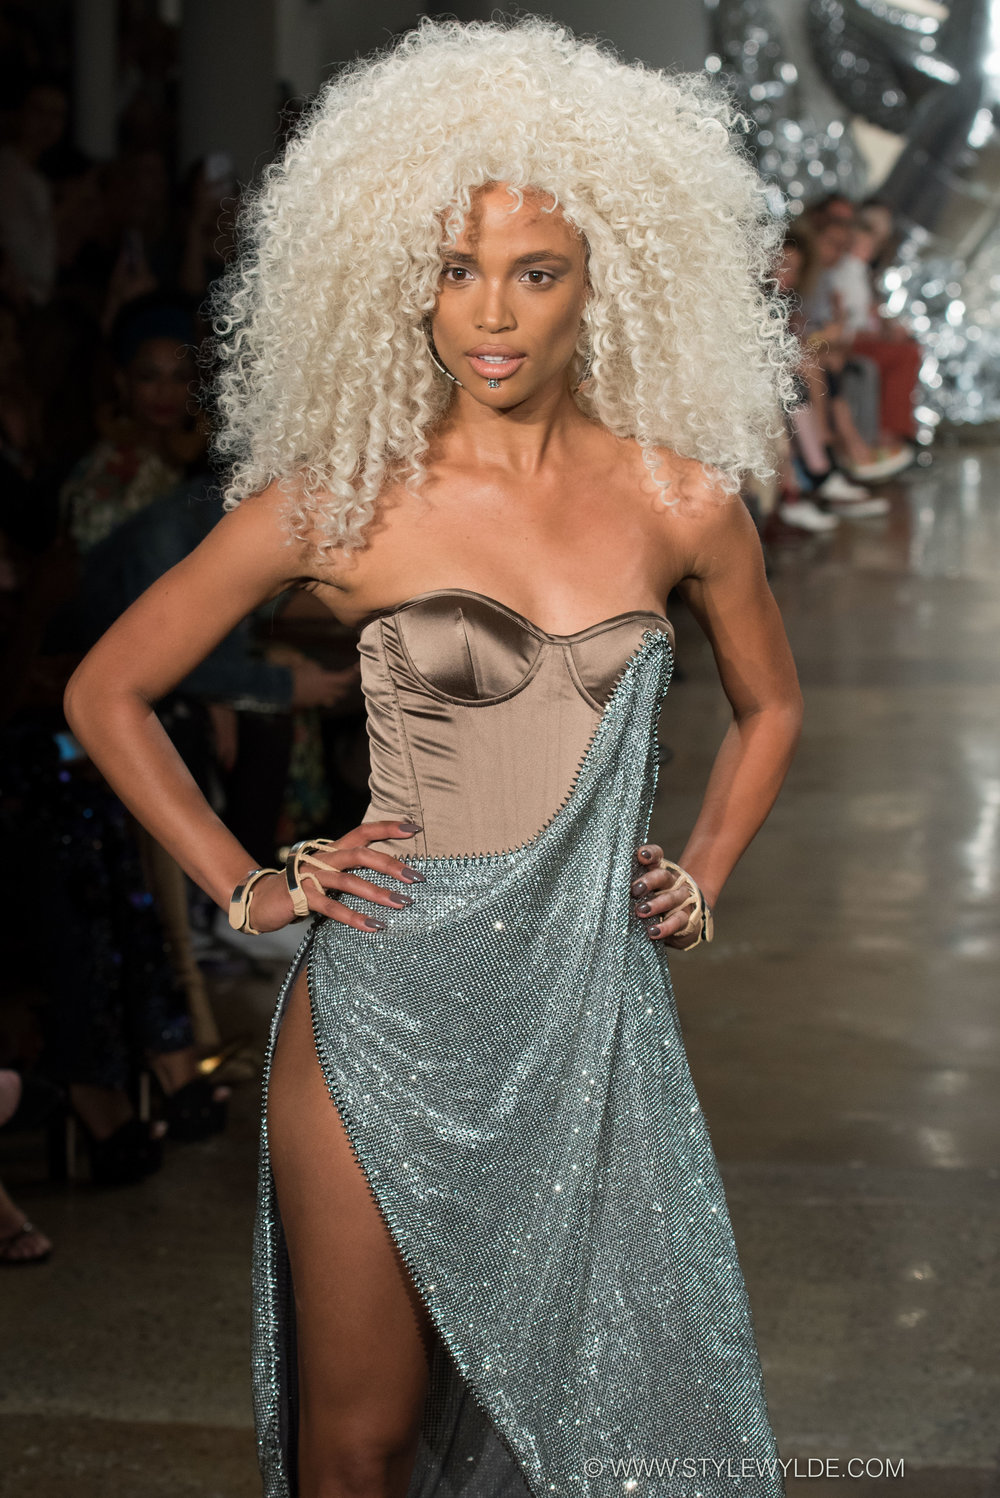 stylewylde-The Blonds SS17-FOH- Edits-52.jpg